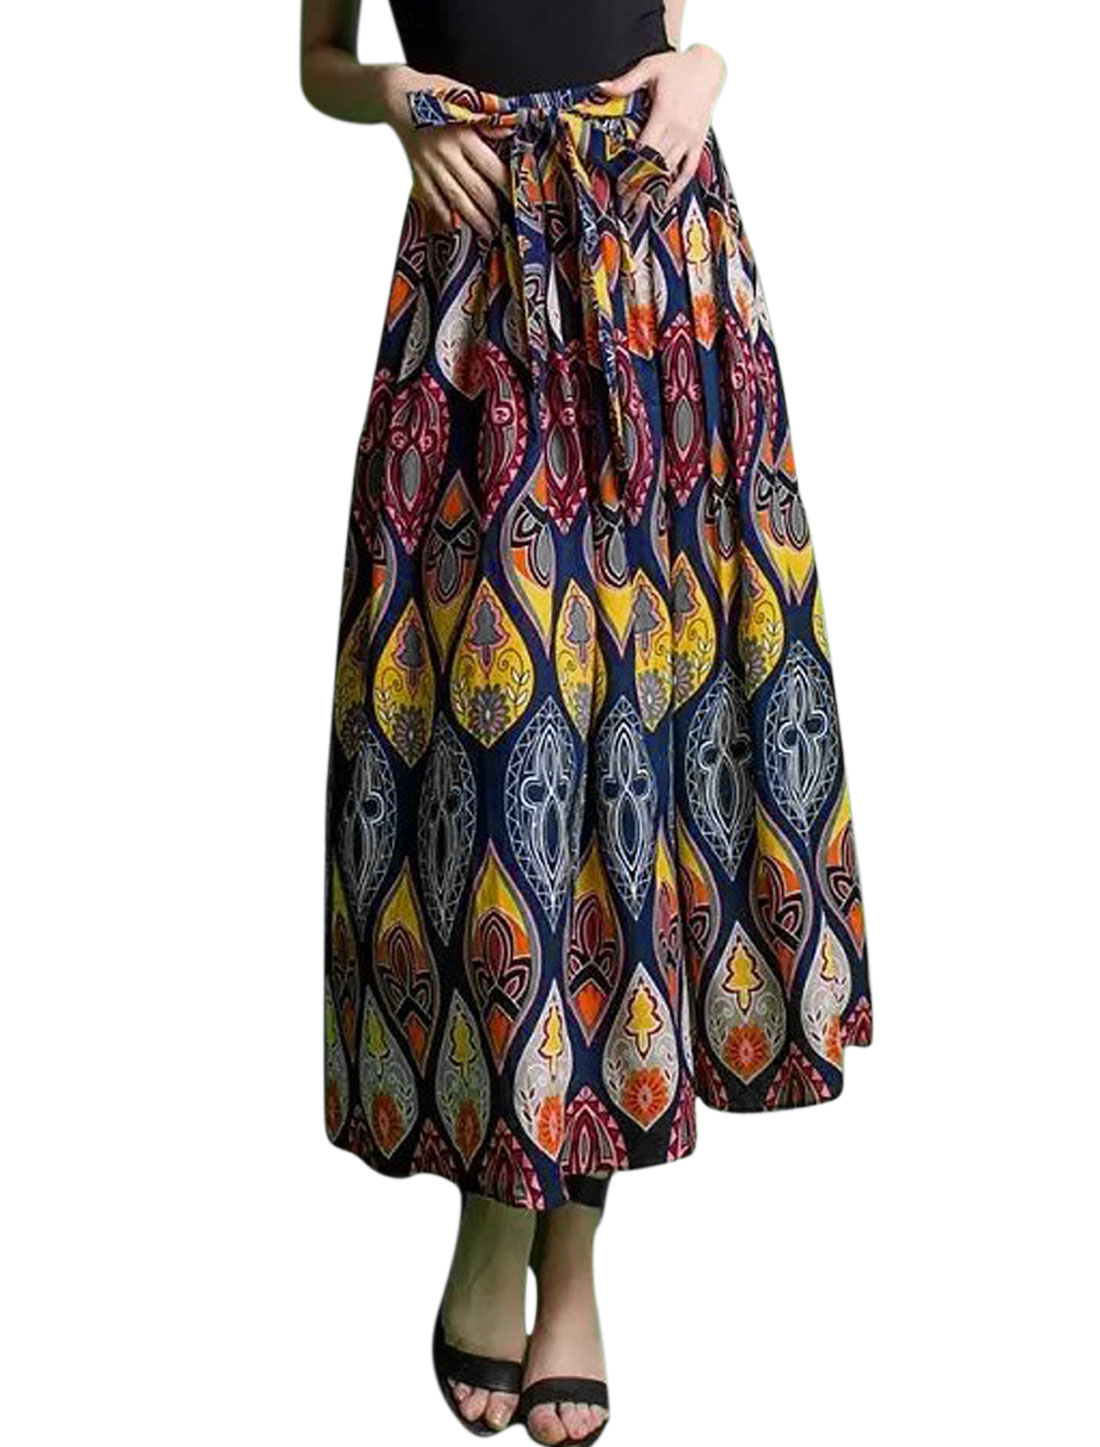 Woman Floral Prints Self Tie Waist String Partially Lined Skirt Dark Blue M